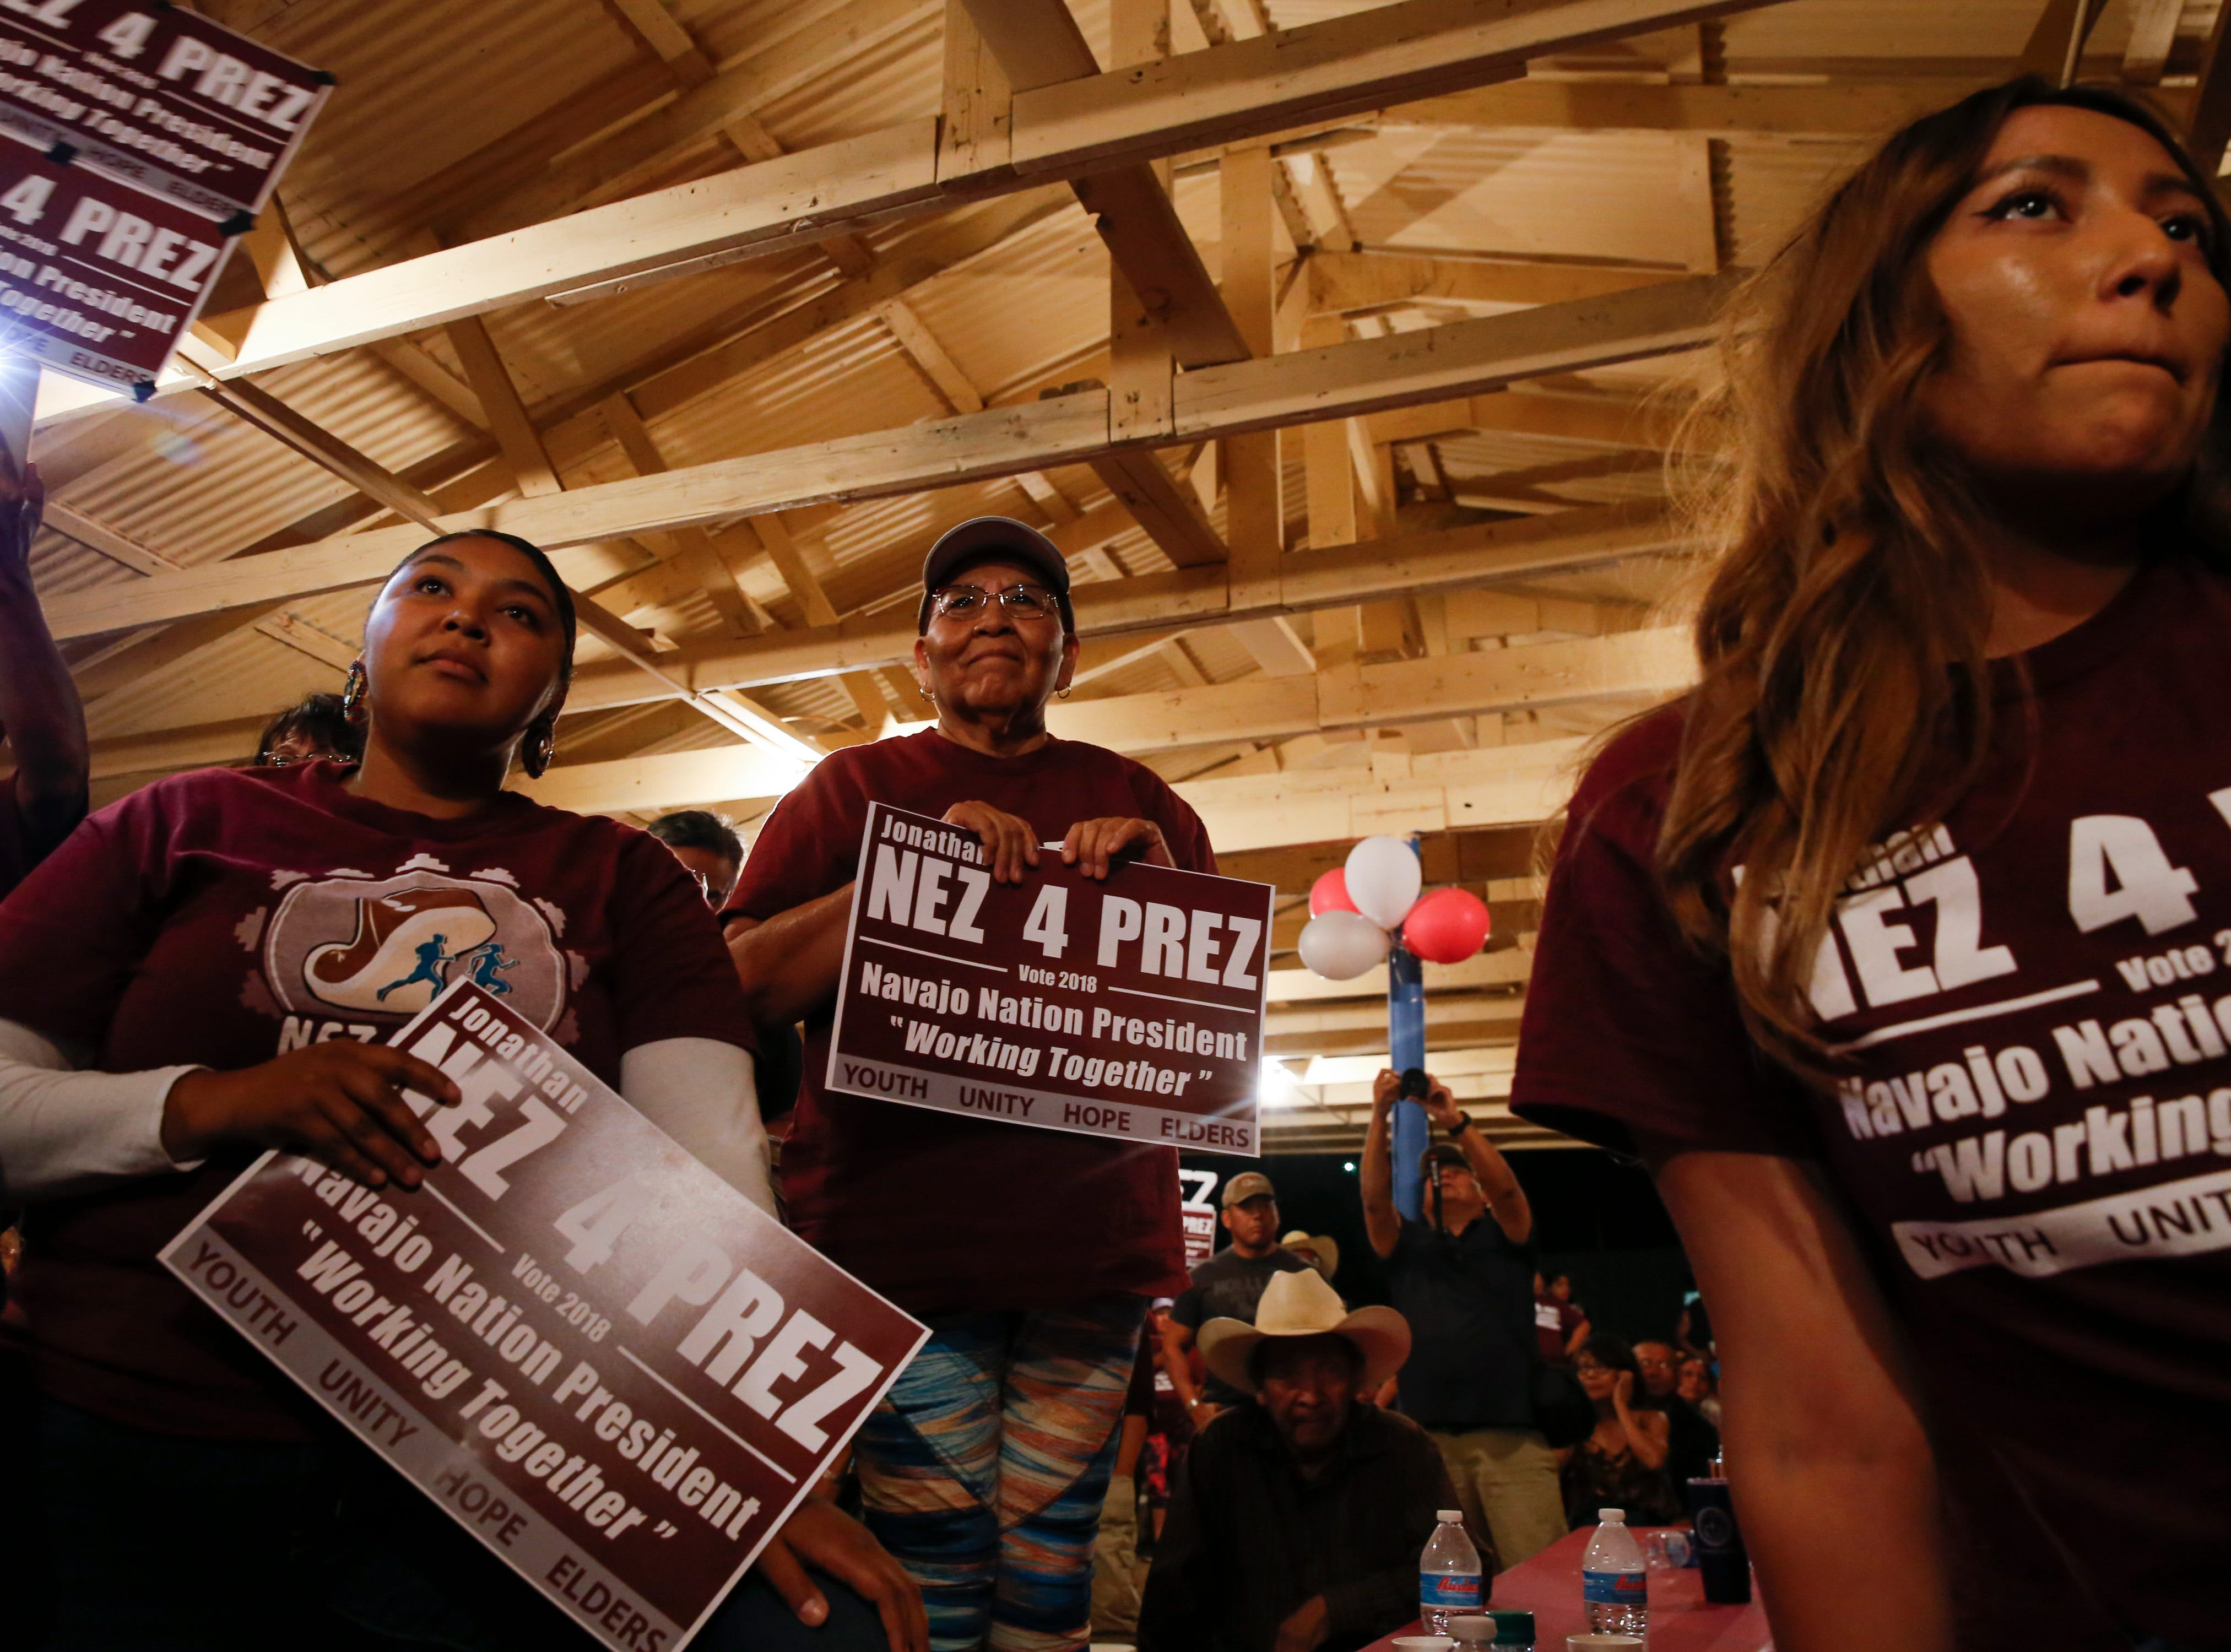 Brittany Tabor, left, listens to a speech by Navajo Nation Presidential candidate Jonathan Nez at his campaign party, Tuesday, Aug. 28, 2018 at the Navajo Nation Fair Grounds in Window Rock, Arizona.